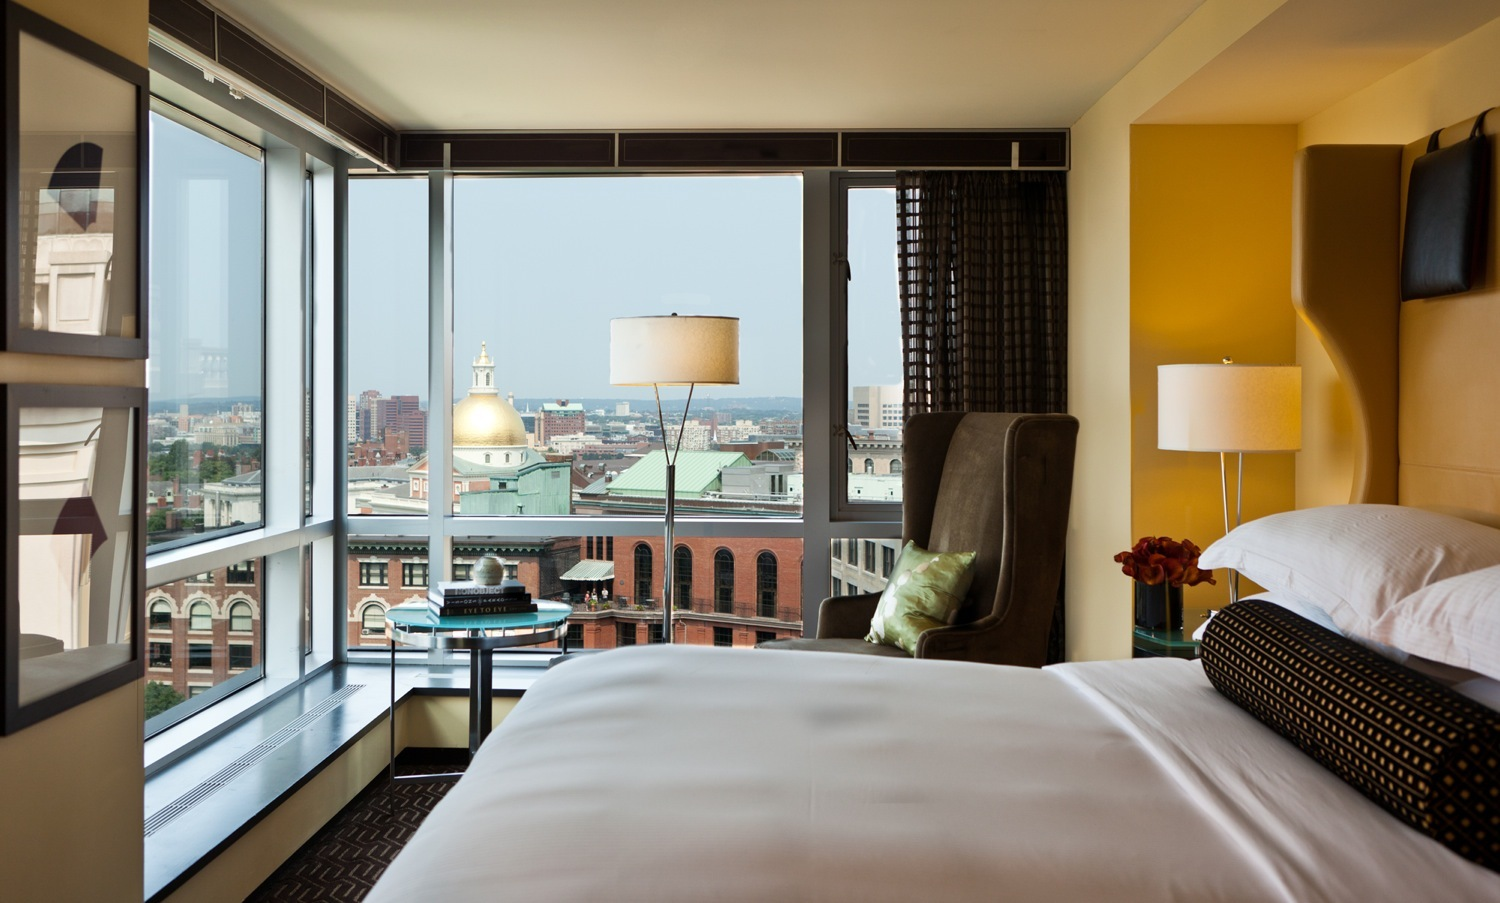 The best hotels in Boston